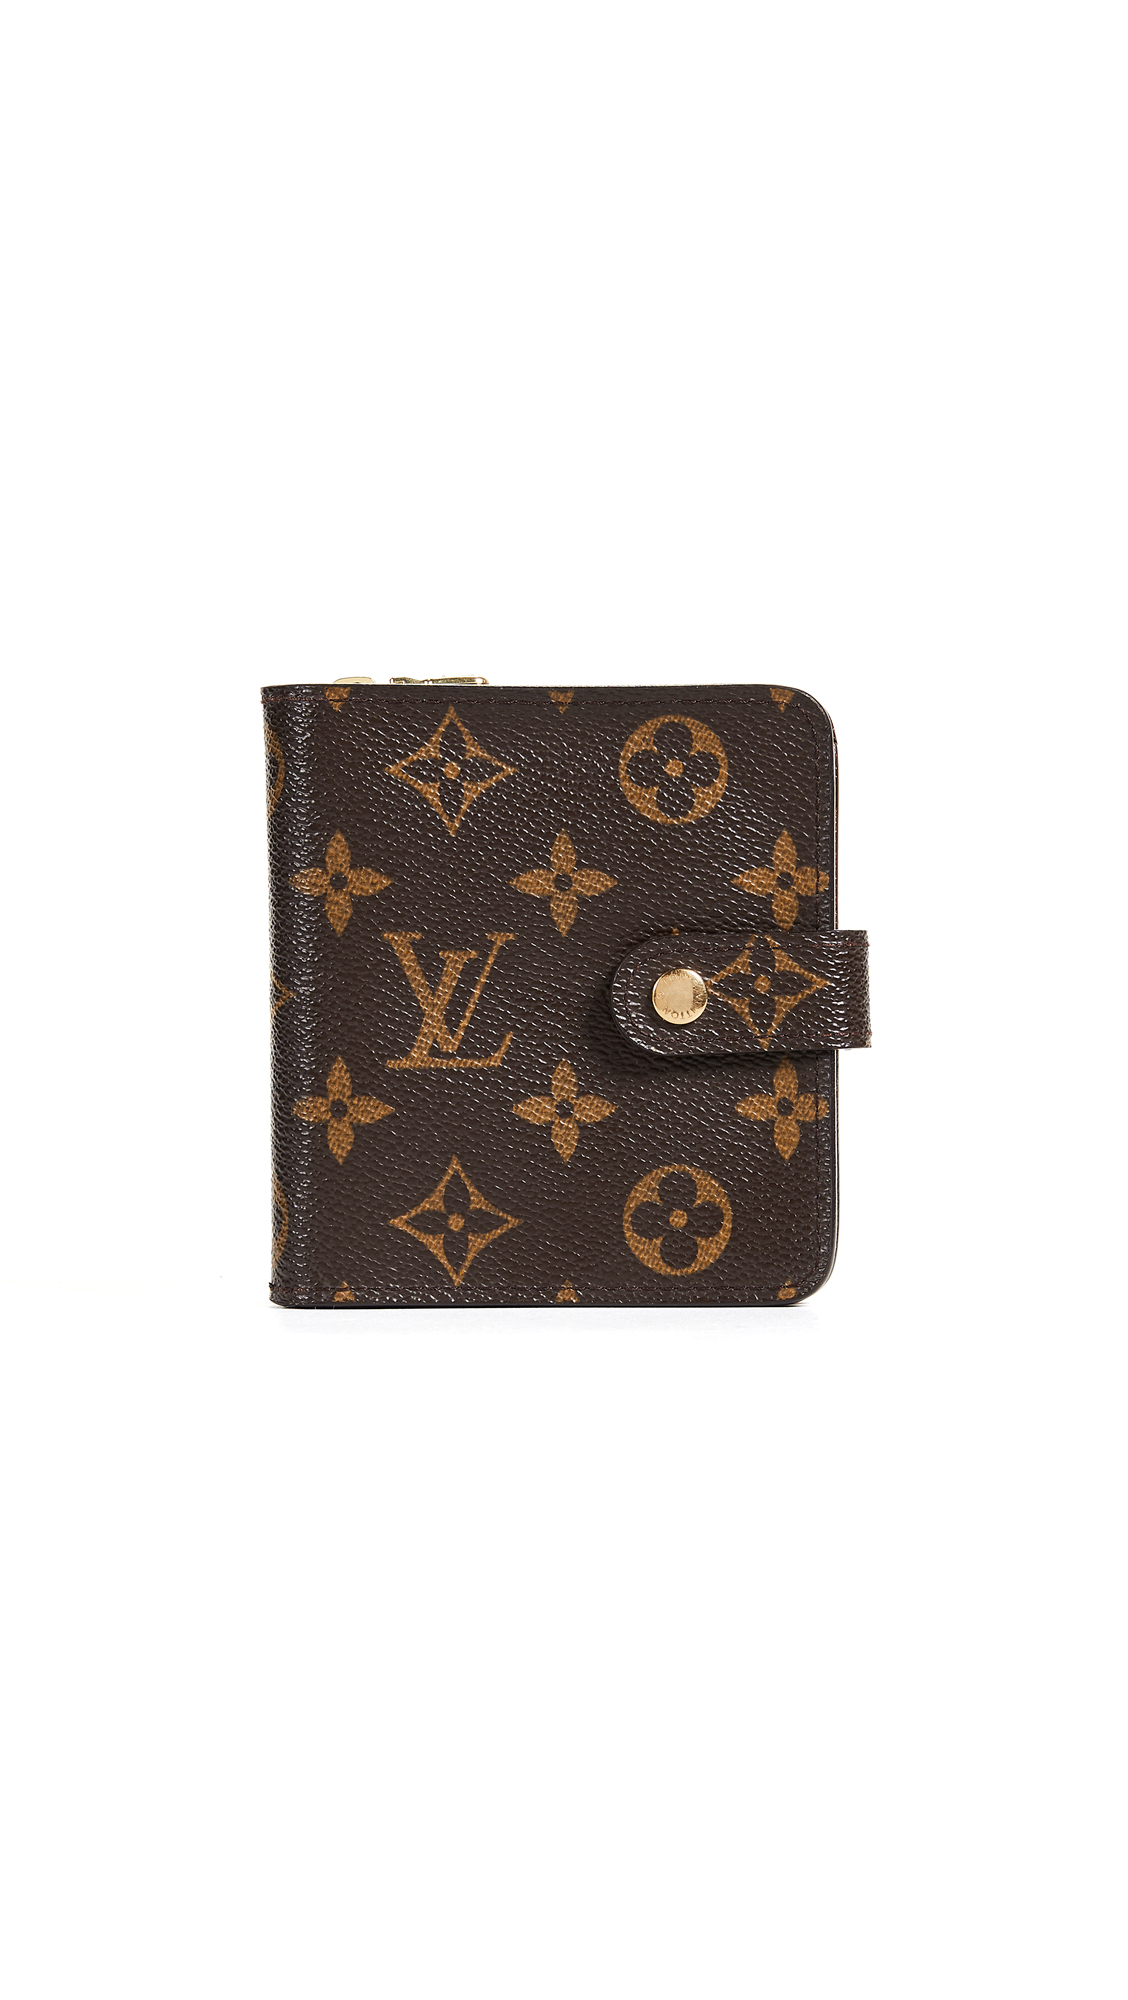 LOUIS VUITTON MONOGRAM AB COMPACT ZIP WALLET